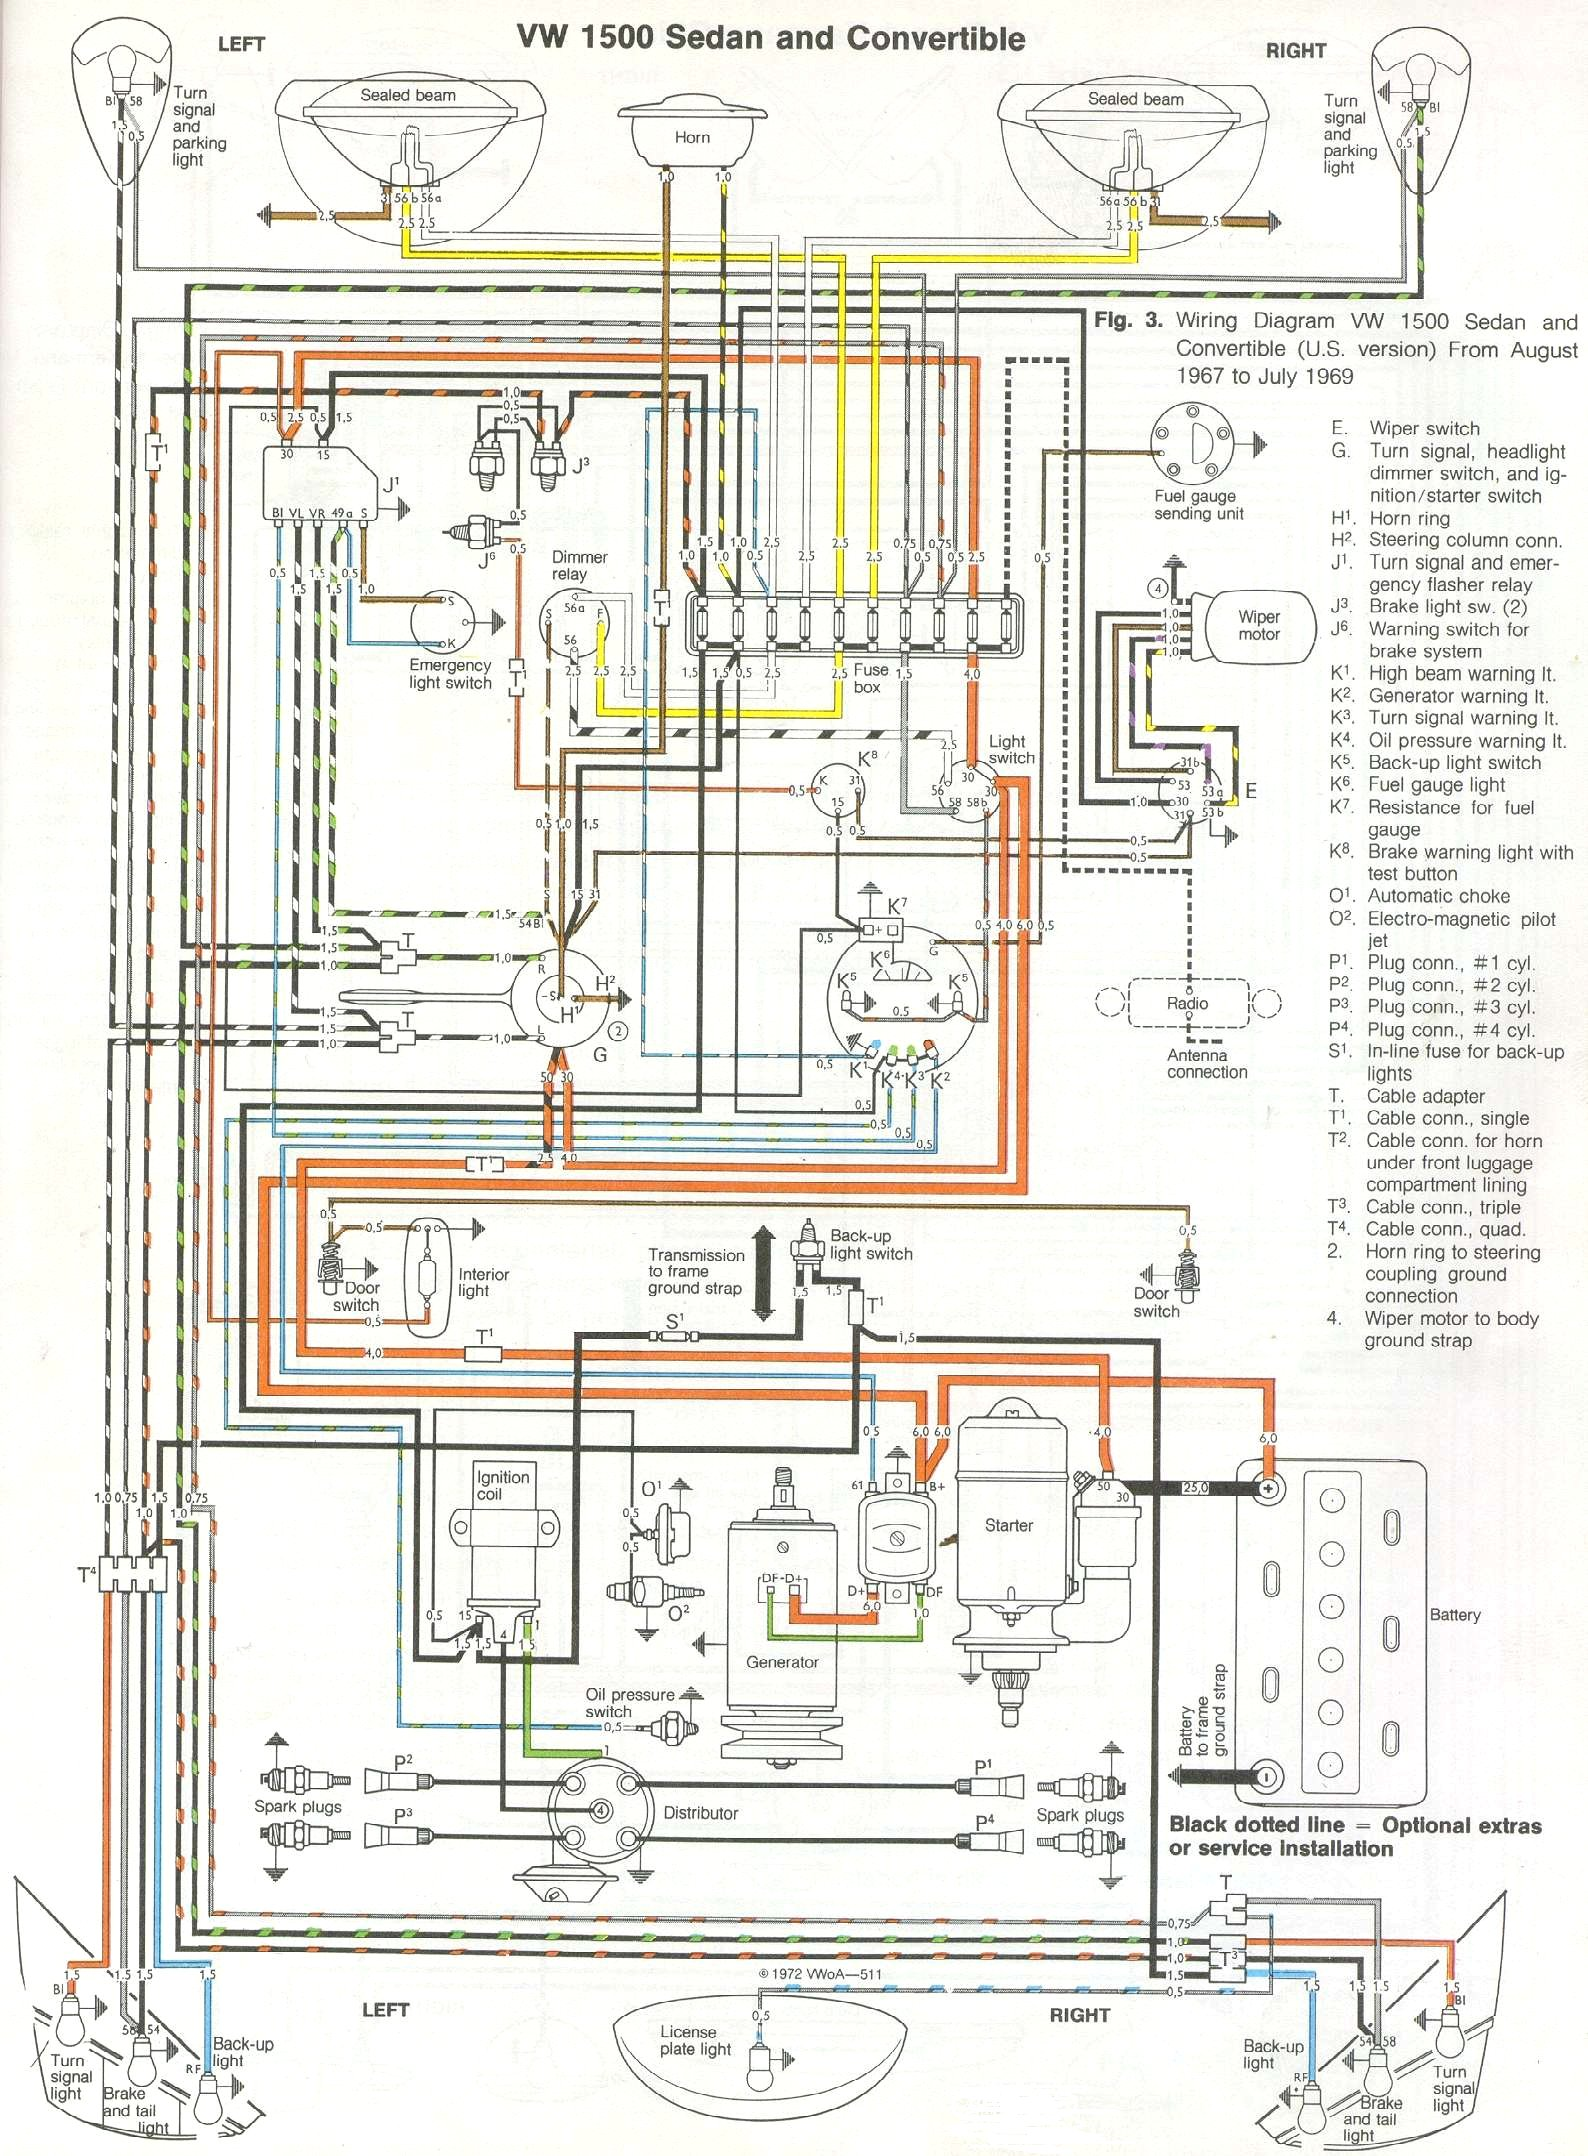 Volkswagon New Beetle Fuse Diagram Schematic Wiring Diagrams 98 Vw 1969 71 Thegoldenbug Com Rh 2000 1998